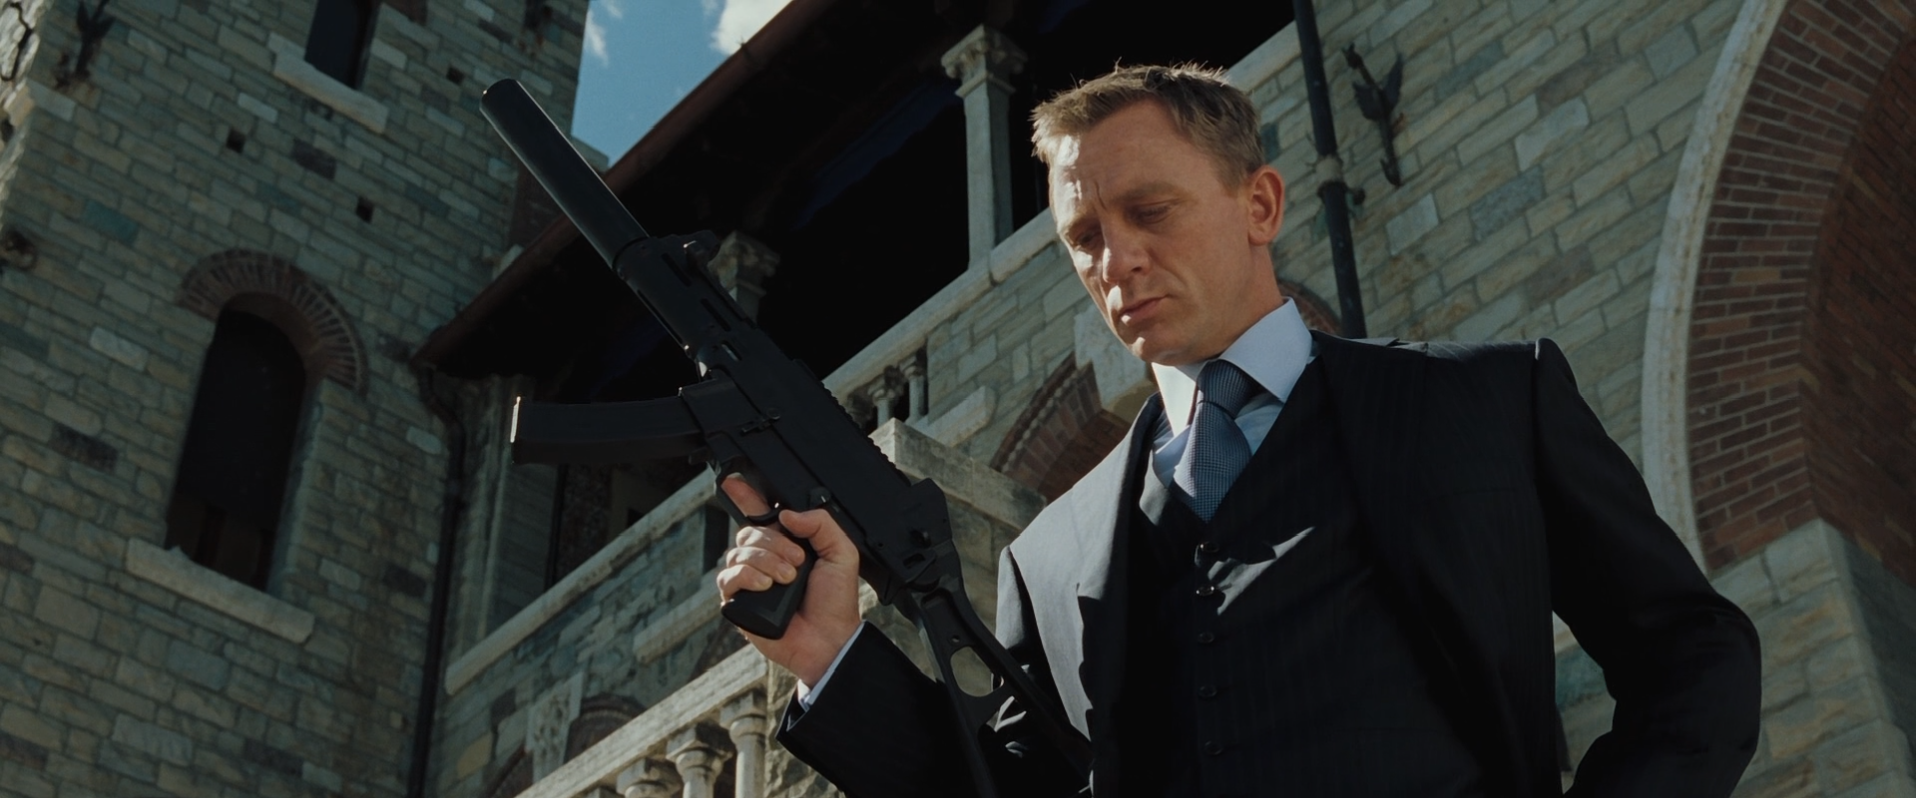 movies similar to casino royale